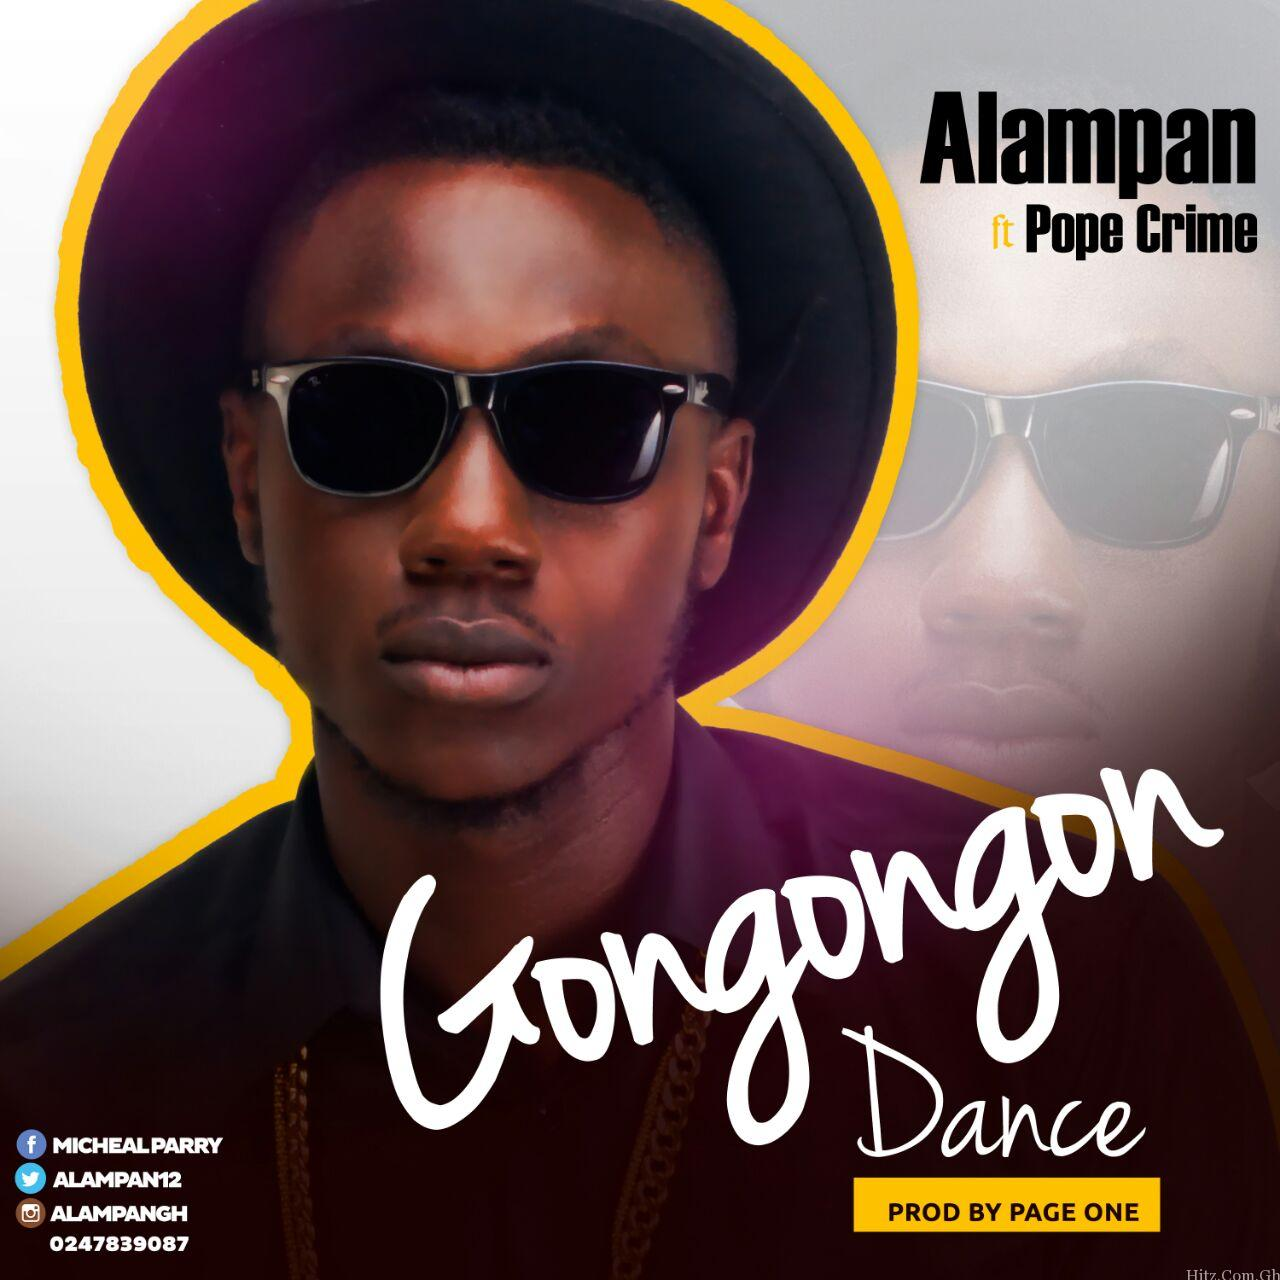 Alampan - Gongongon Dance (Ft. Pope Crime) (Prod. By Page One)